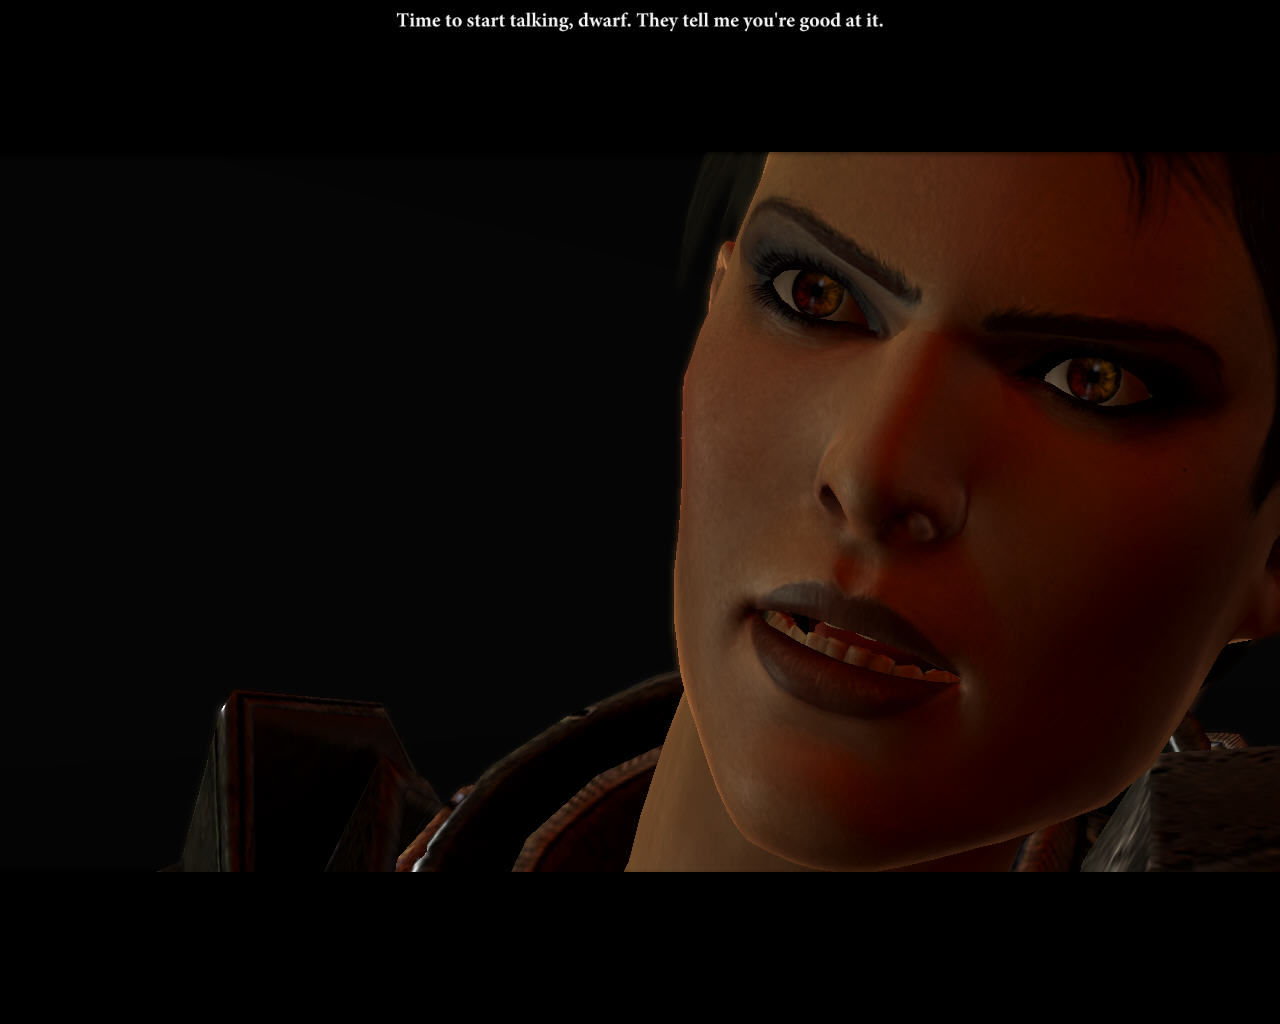 Dragon Age II Windows ...by a certain mysterious Chantry messenger